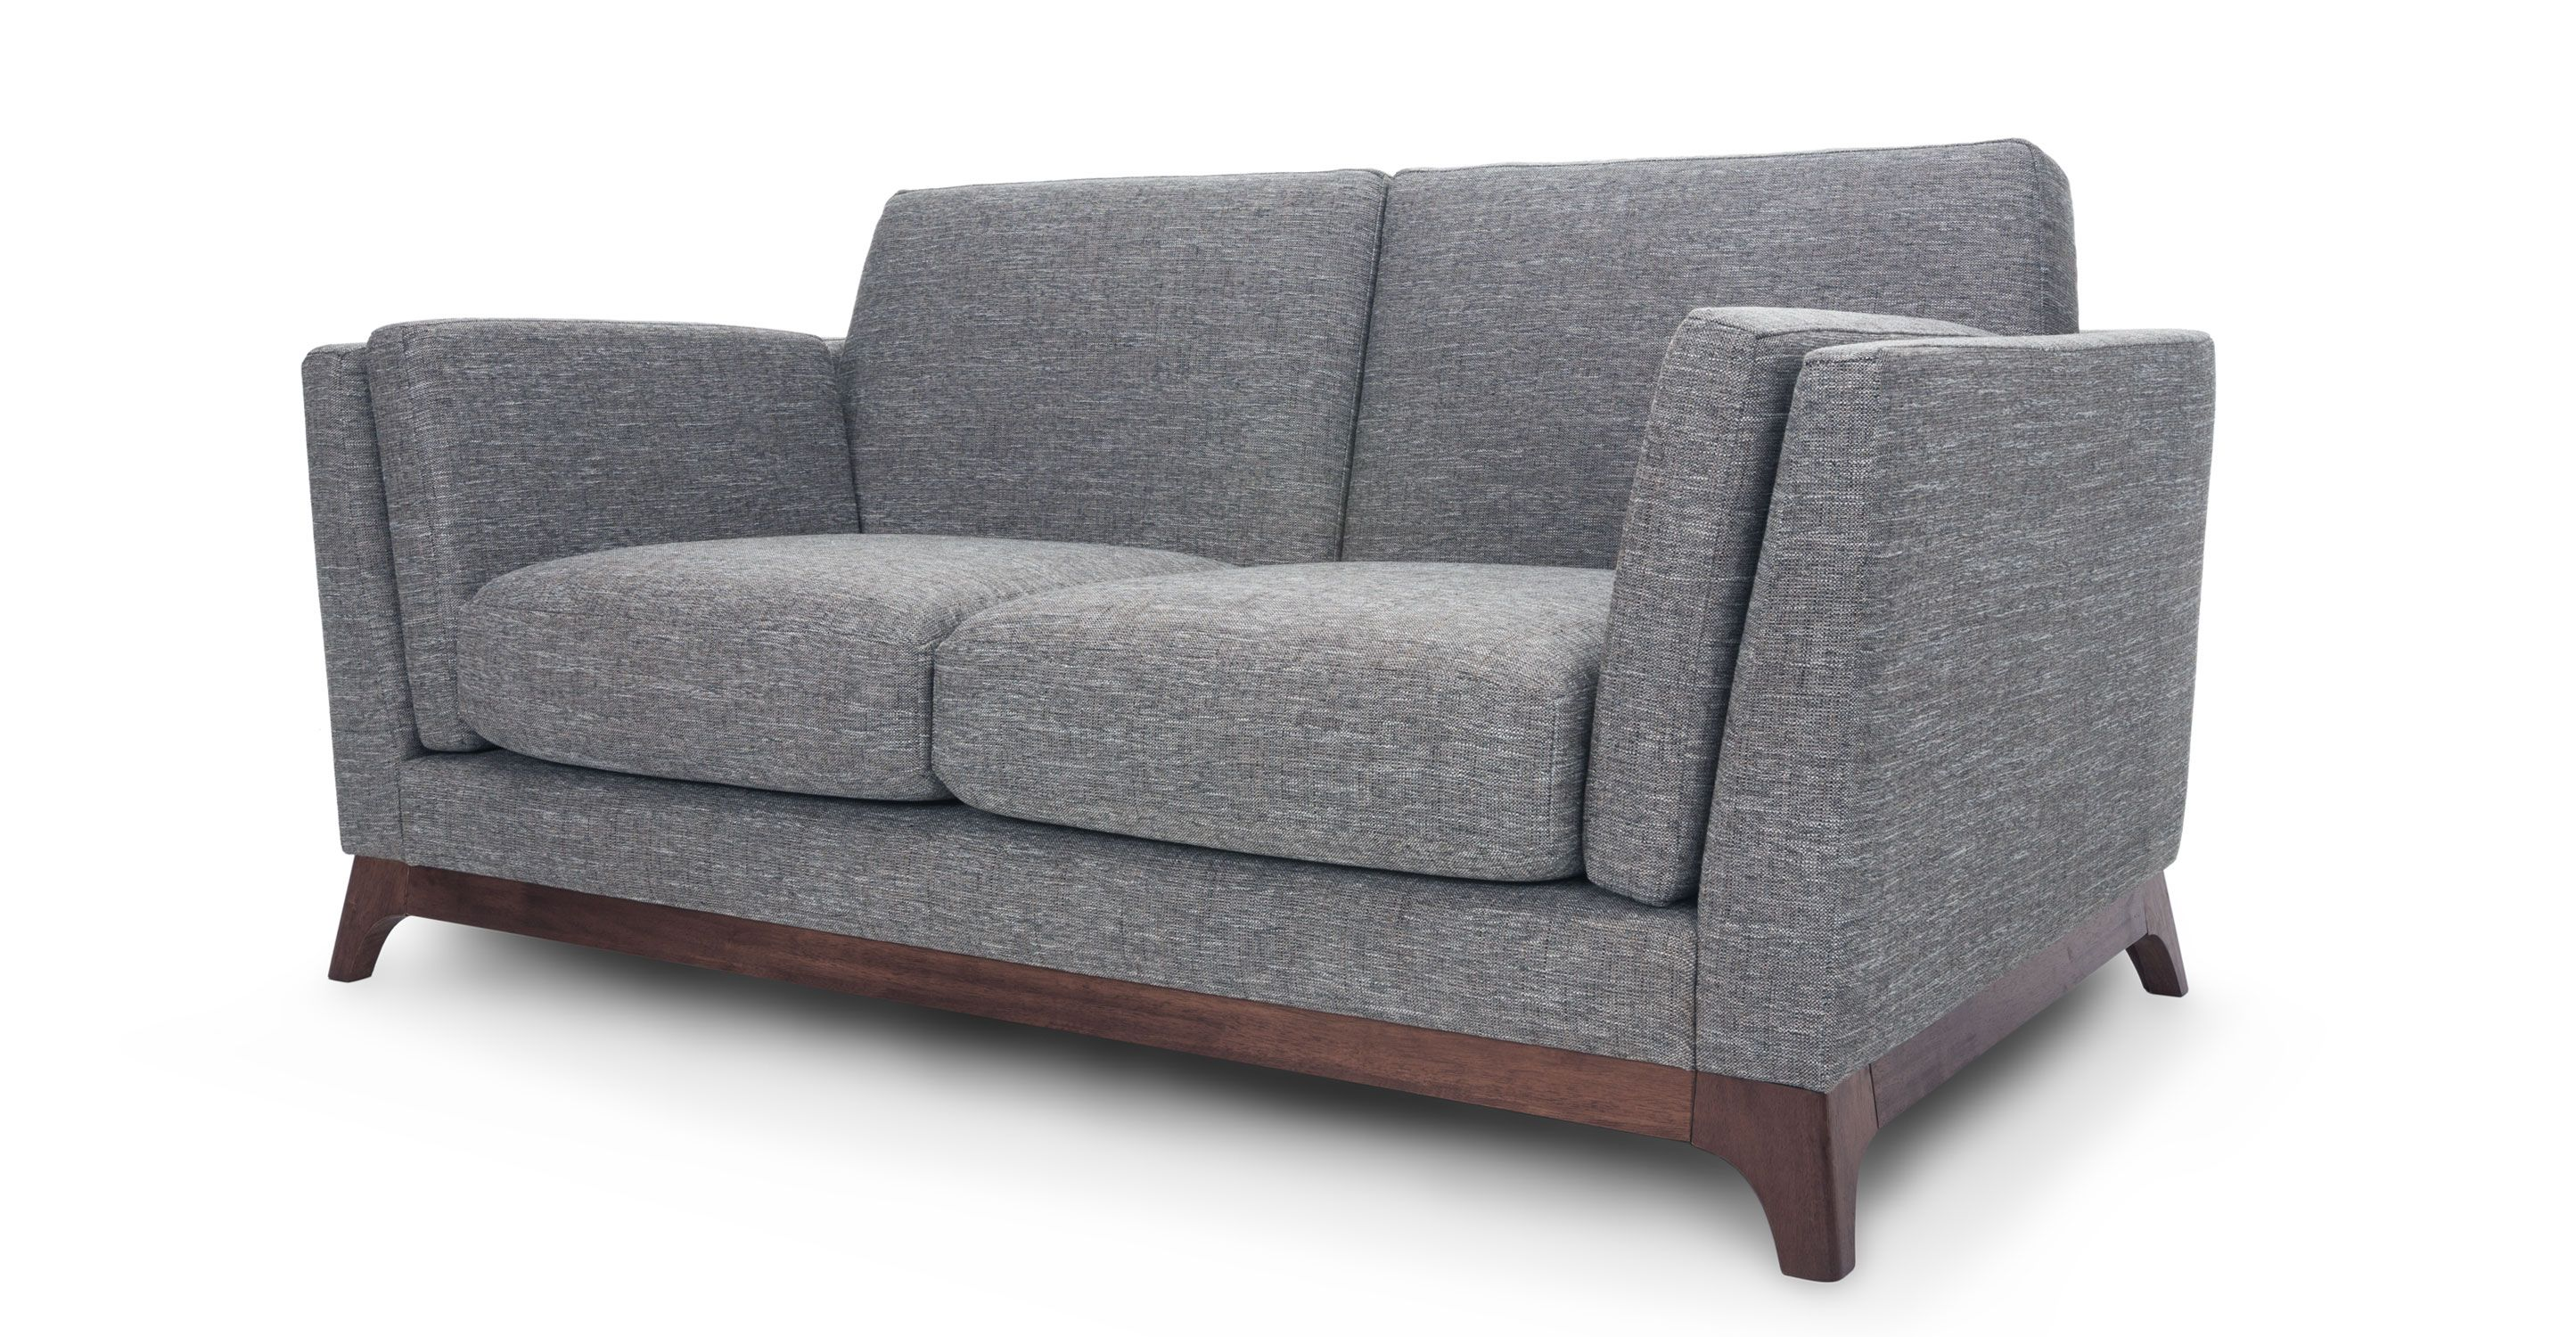 Ceni Coral Gray Loveseat - Loveseats - Bryght | Modern, Mid-Century and Scandinavian Furniture